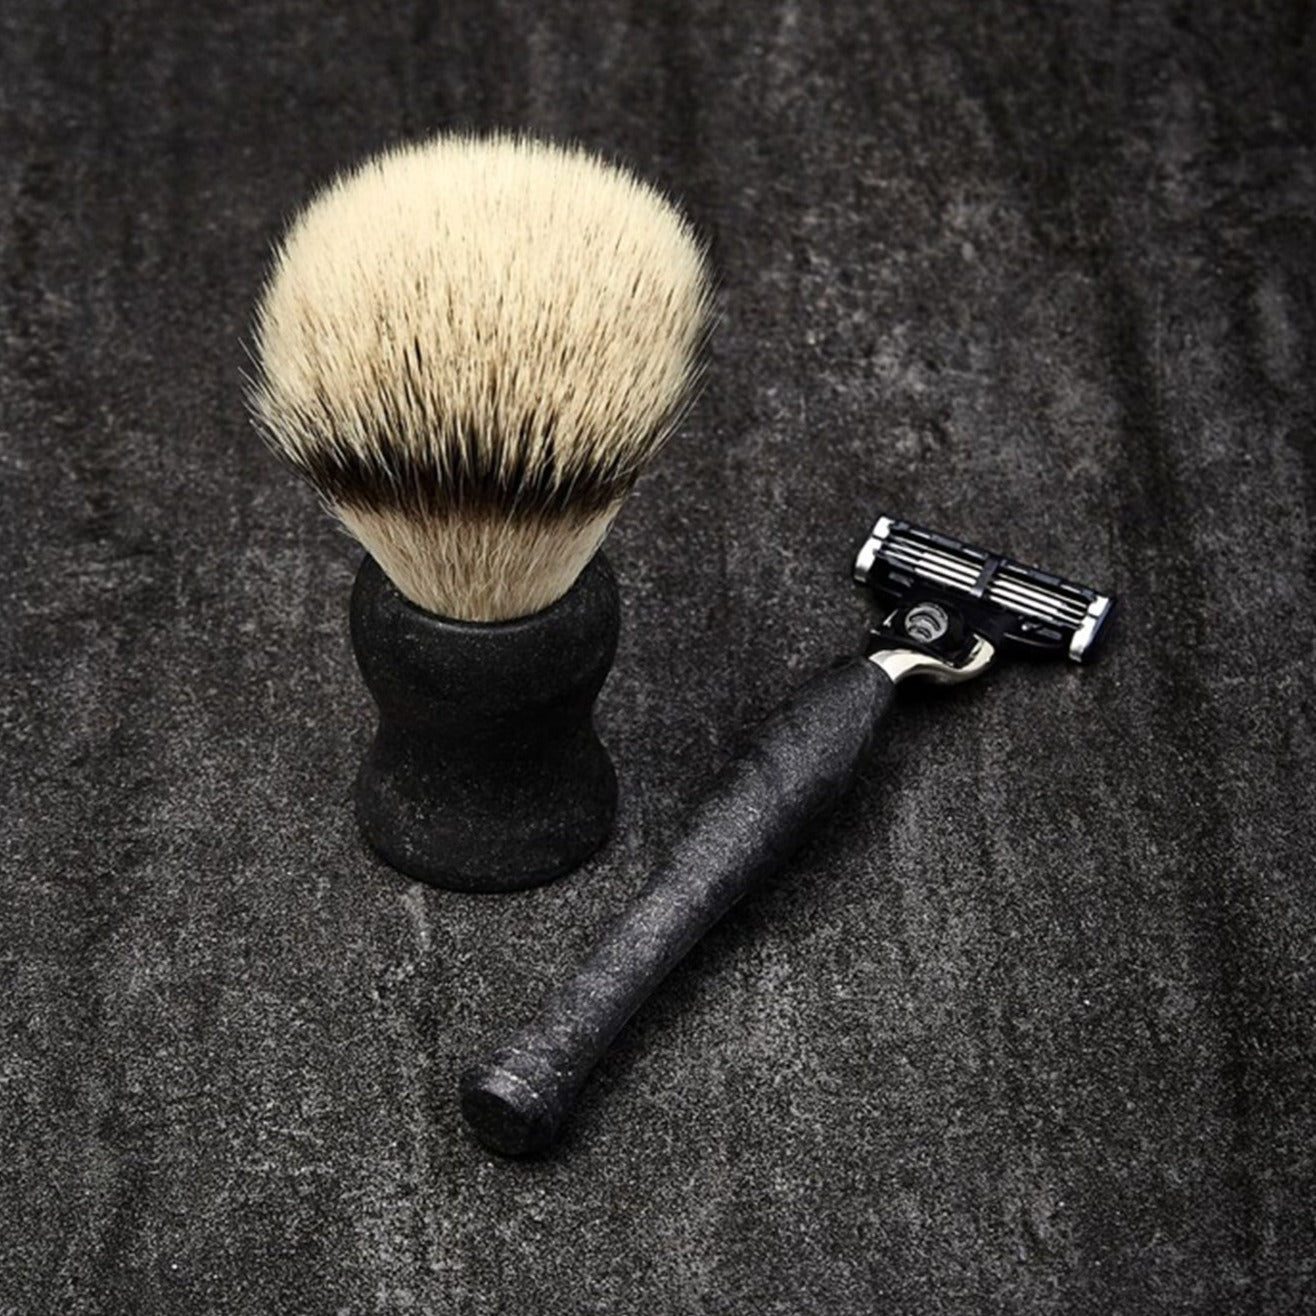 Acca Kappa Vegan Shave Brush